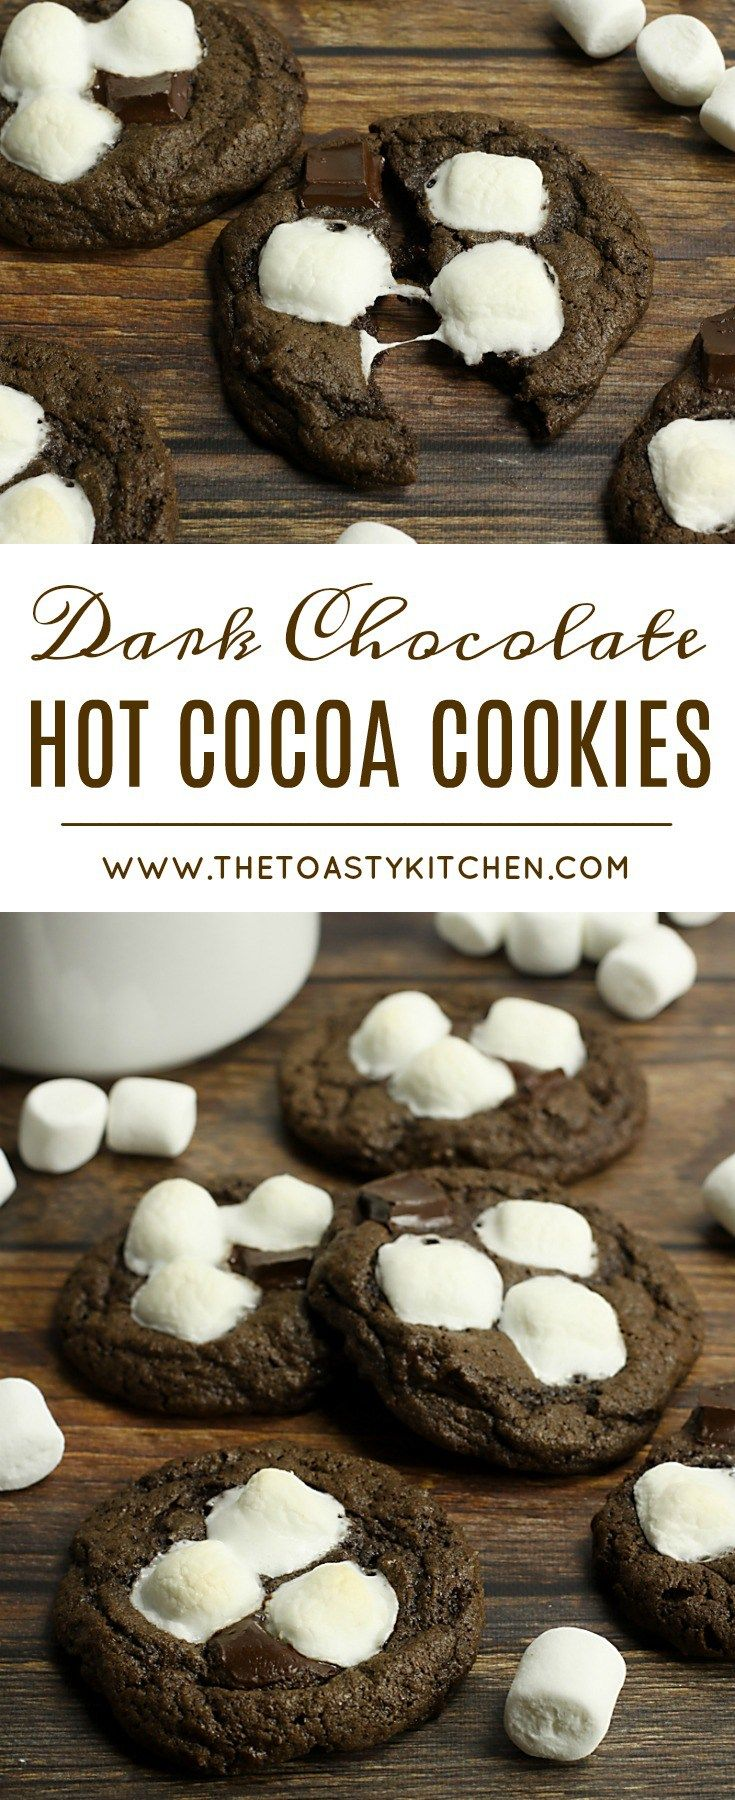 Dark Chocolate Hot Cocoa Cookies by The Toasty Kitchen